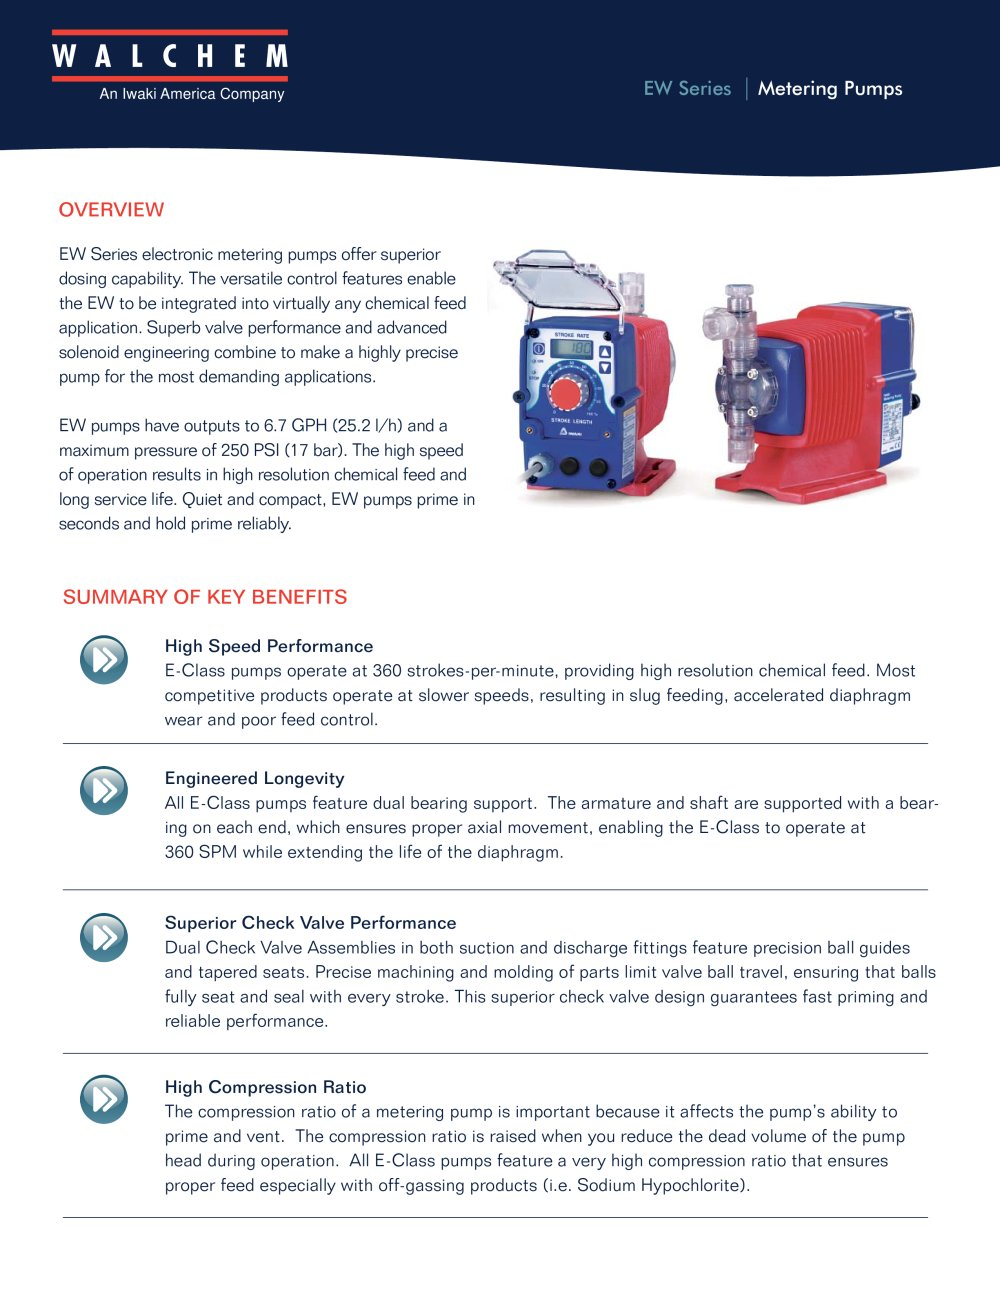 Ew Series Ew Series Metering Pumps Walchem Pdf Catalogs Technical